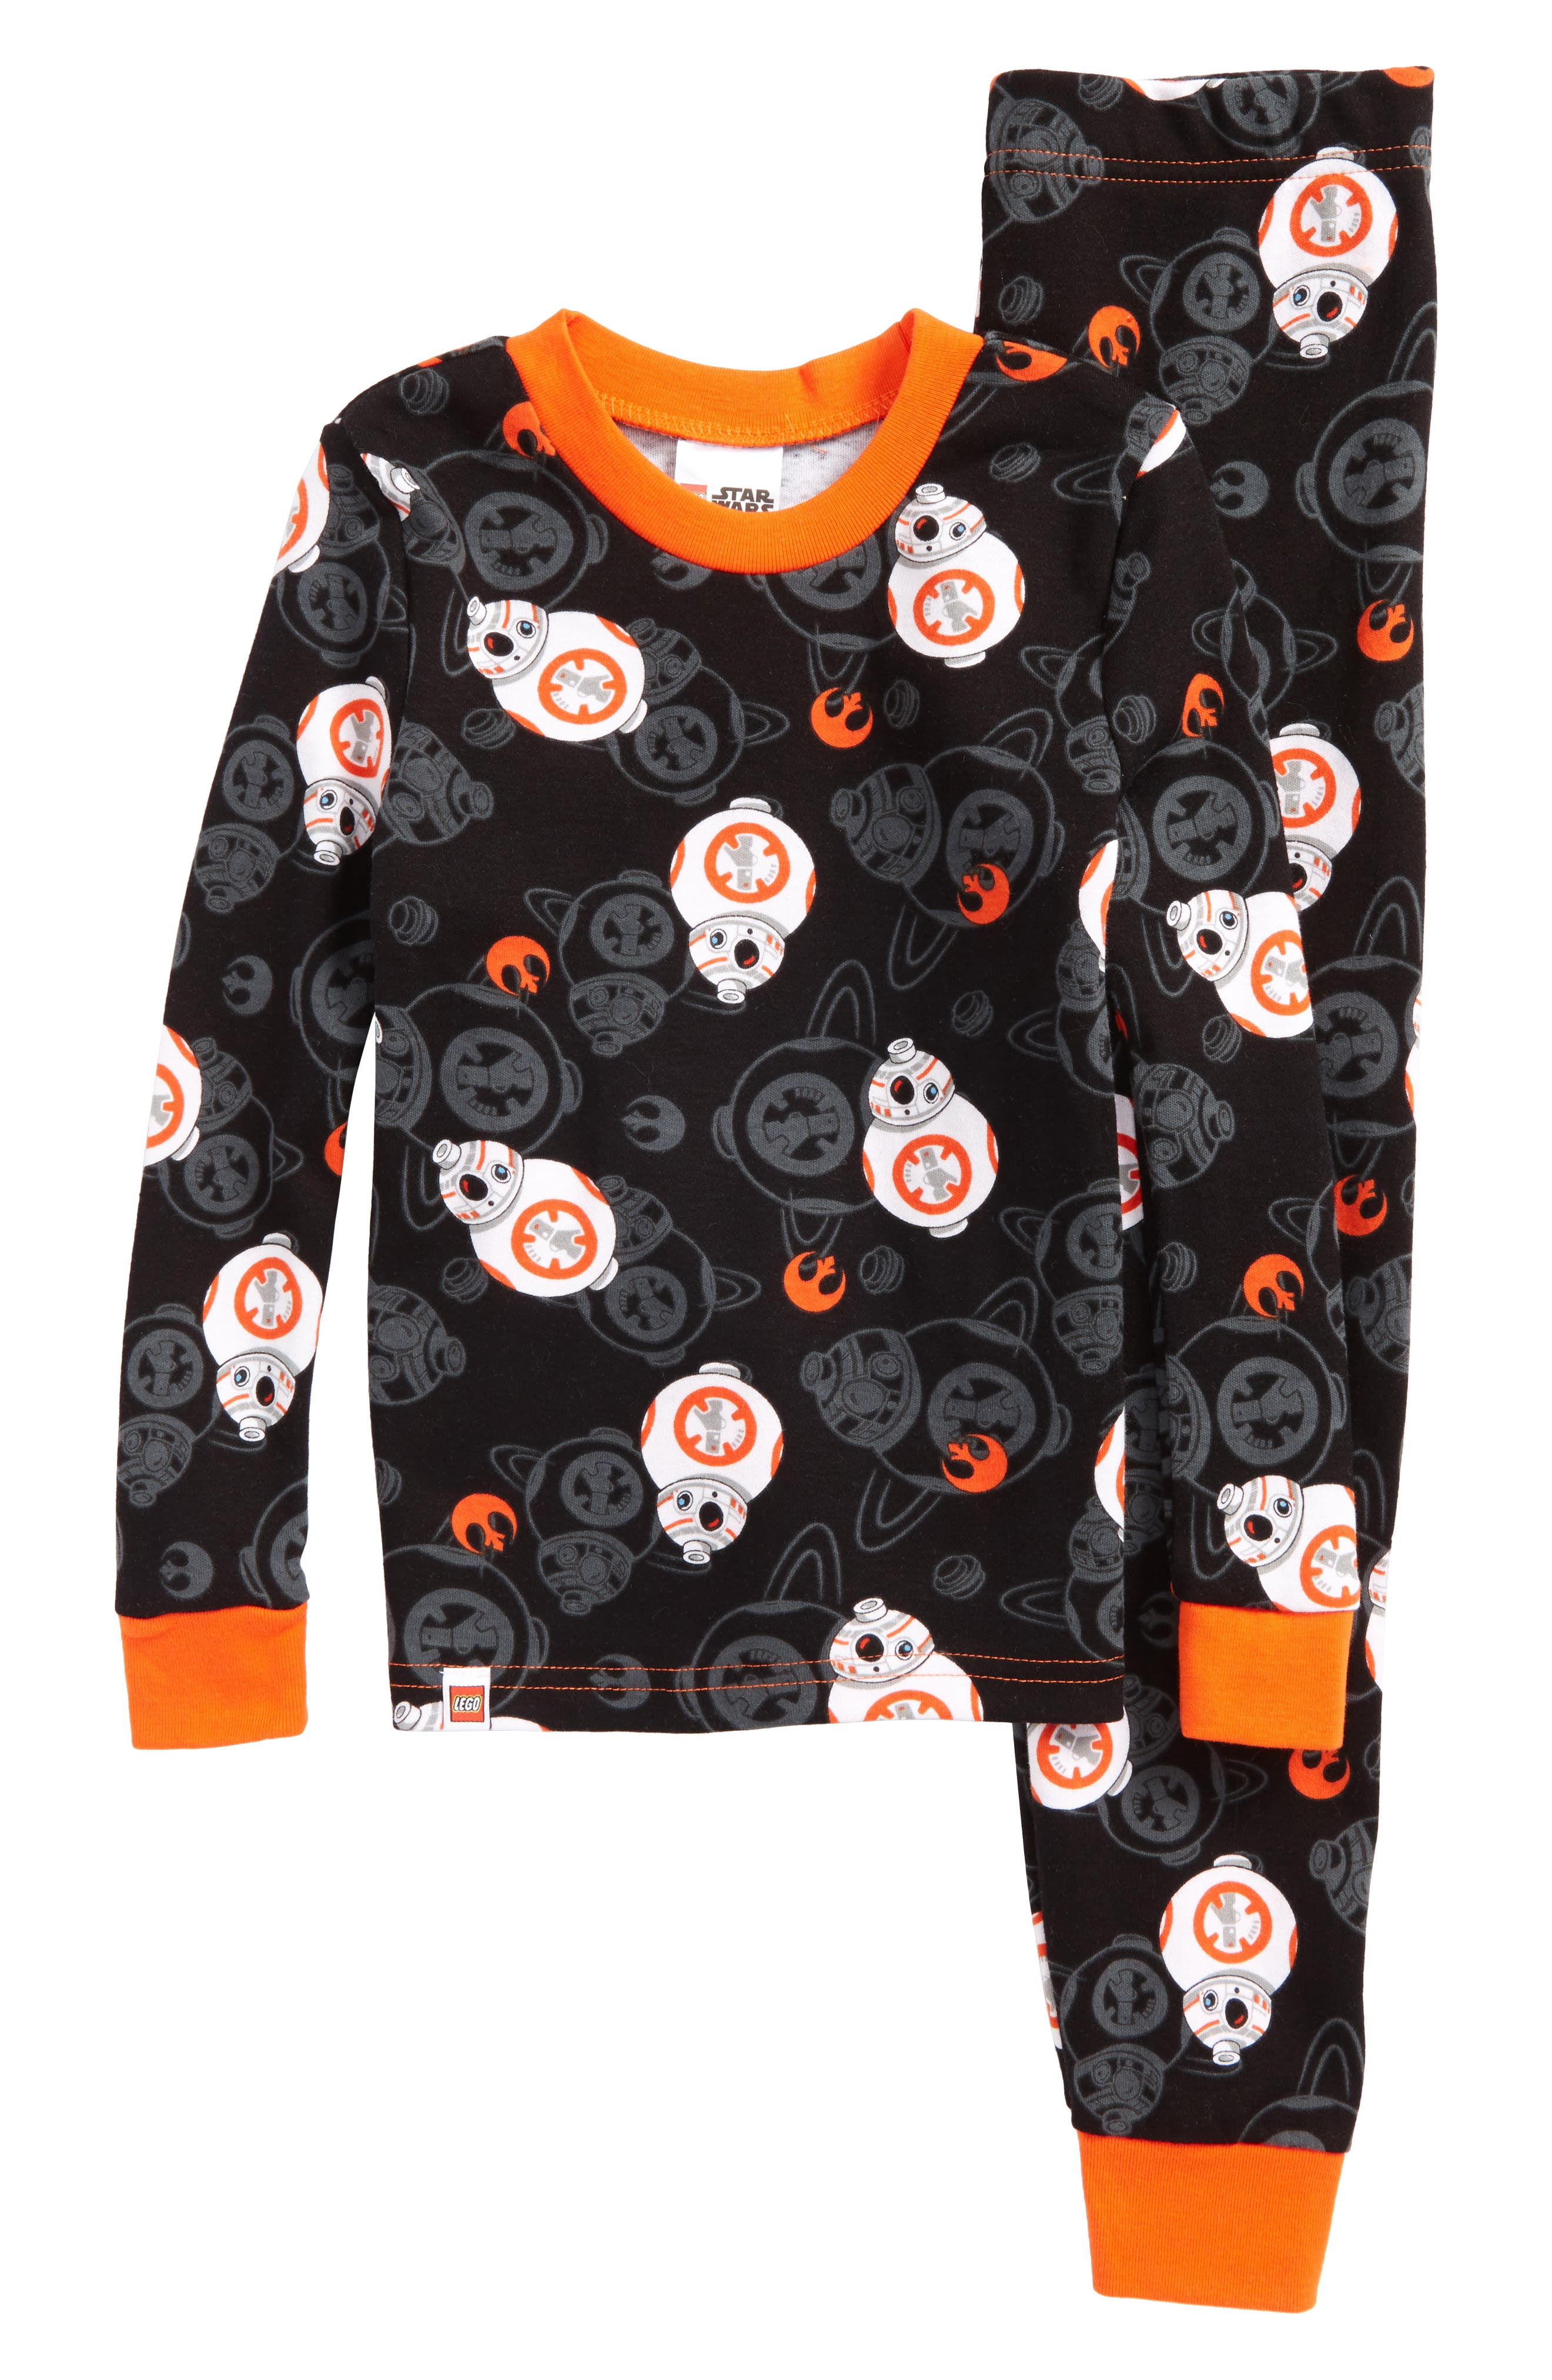 Lego Star Wars<sup>™</sup> BB-8 Fitted Two-Piece Cotton Pajama Set,                             Main thumbnail 1, color,                             001